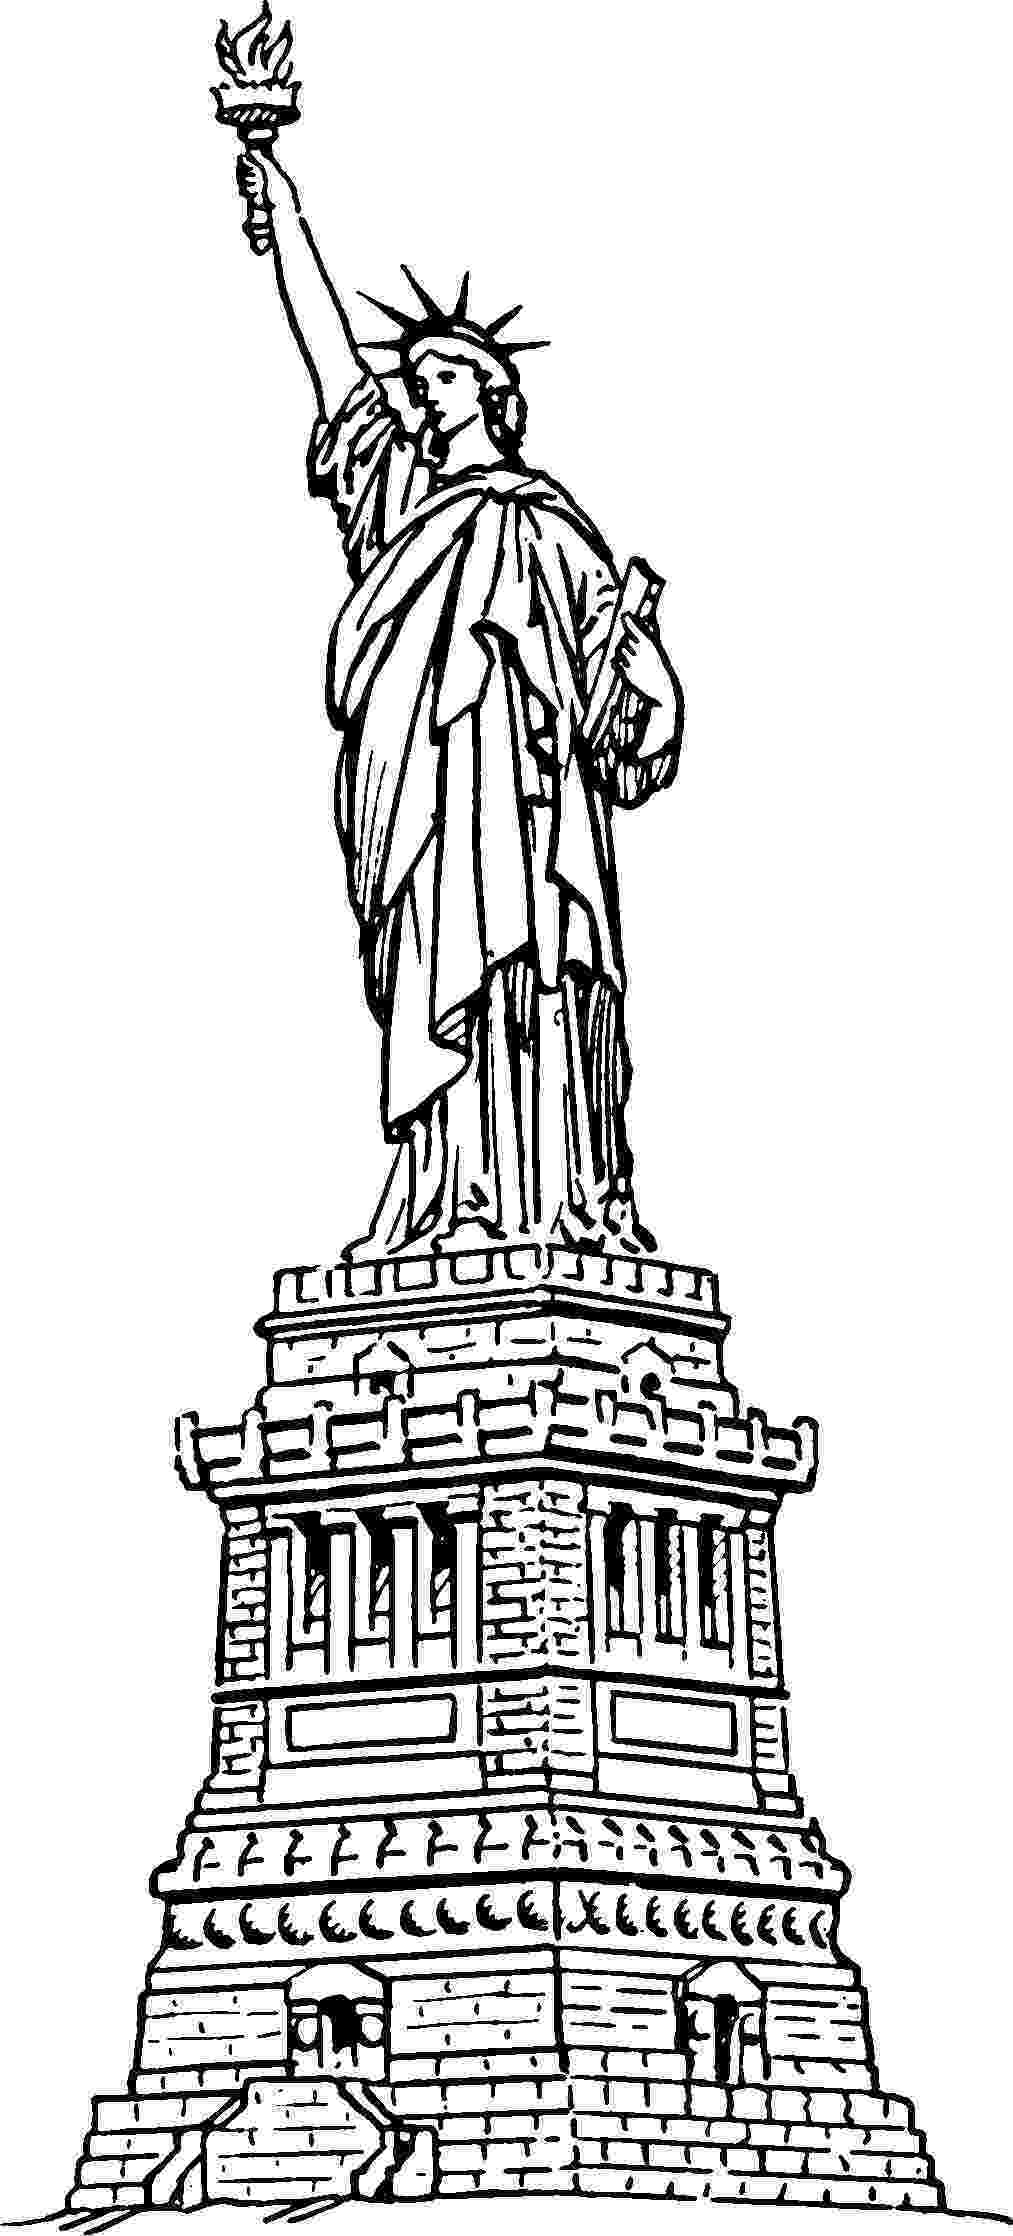 statue of liberty coloring page statue of liberty picture coloring page download print coloring liberty of statue page